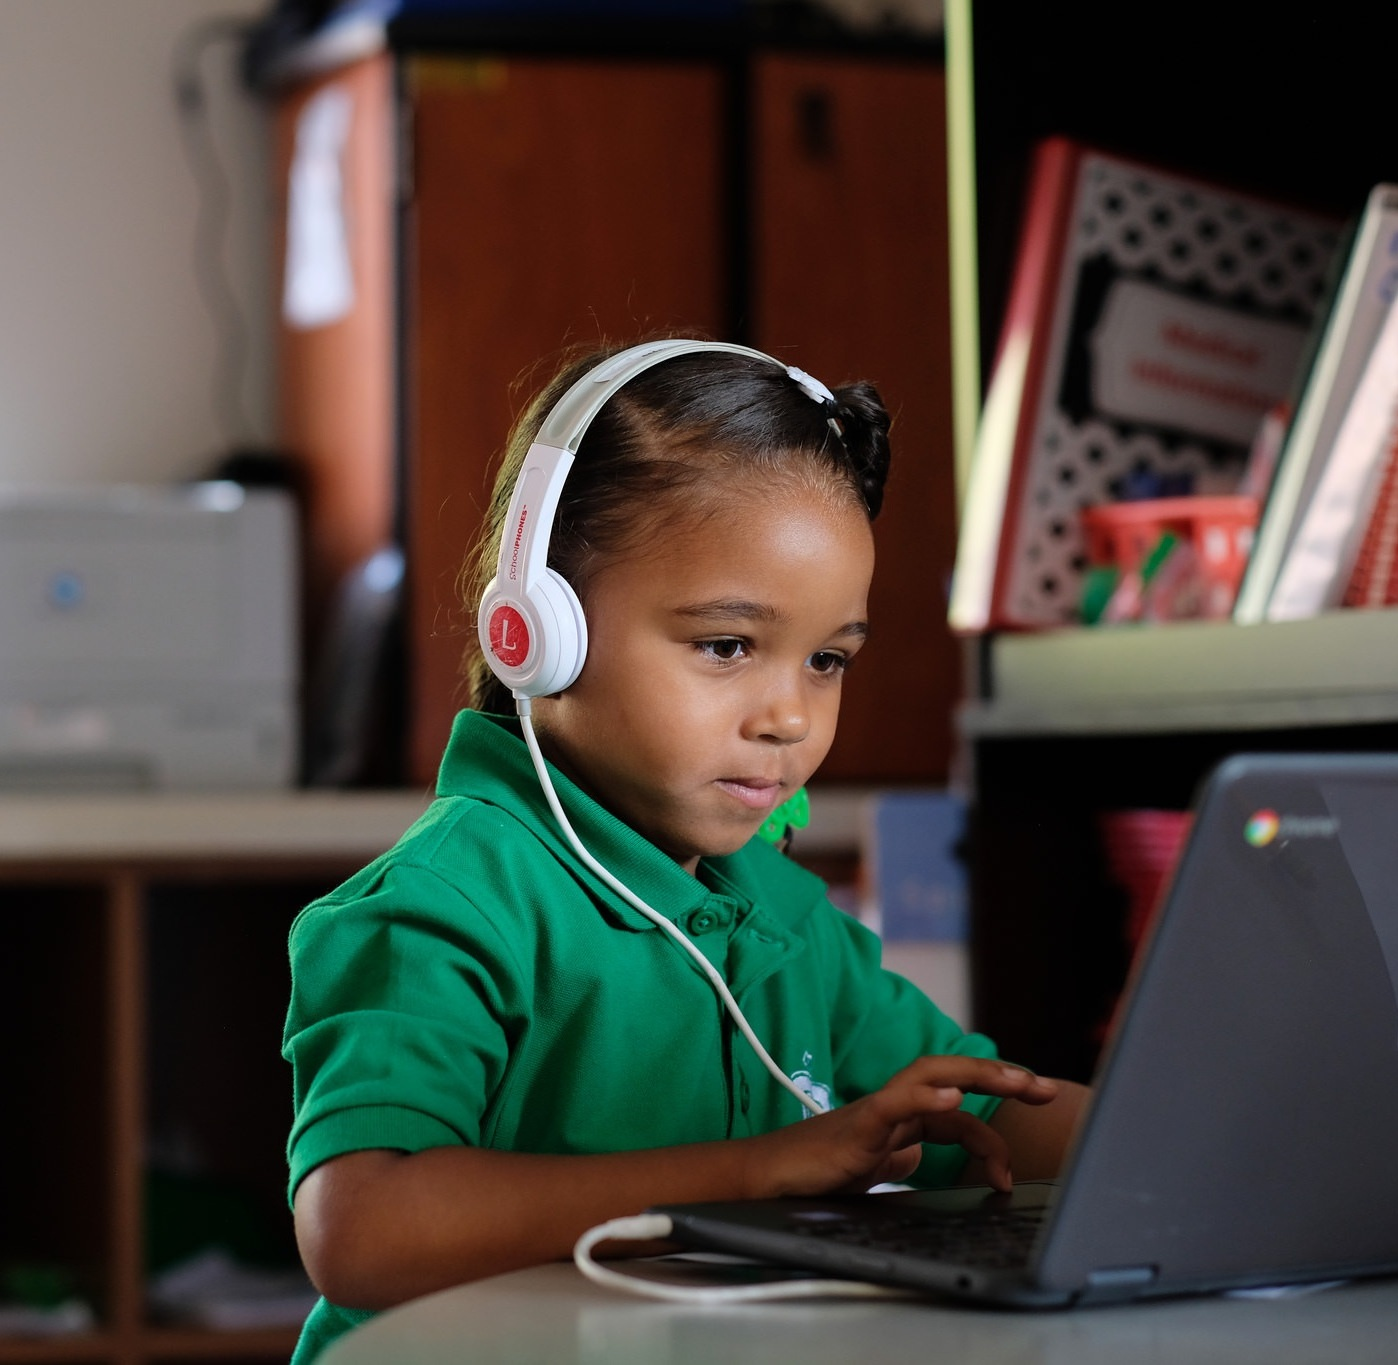 Technology Access - Each K-5th grade classroom has 1 technology device per 3 scholars, and each 6th-8th grade classroom has one technology device per scholar.